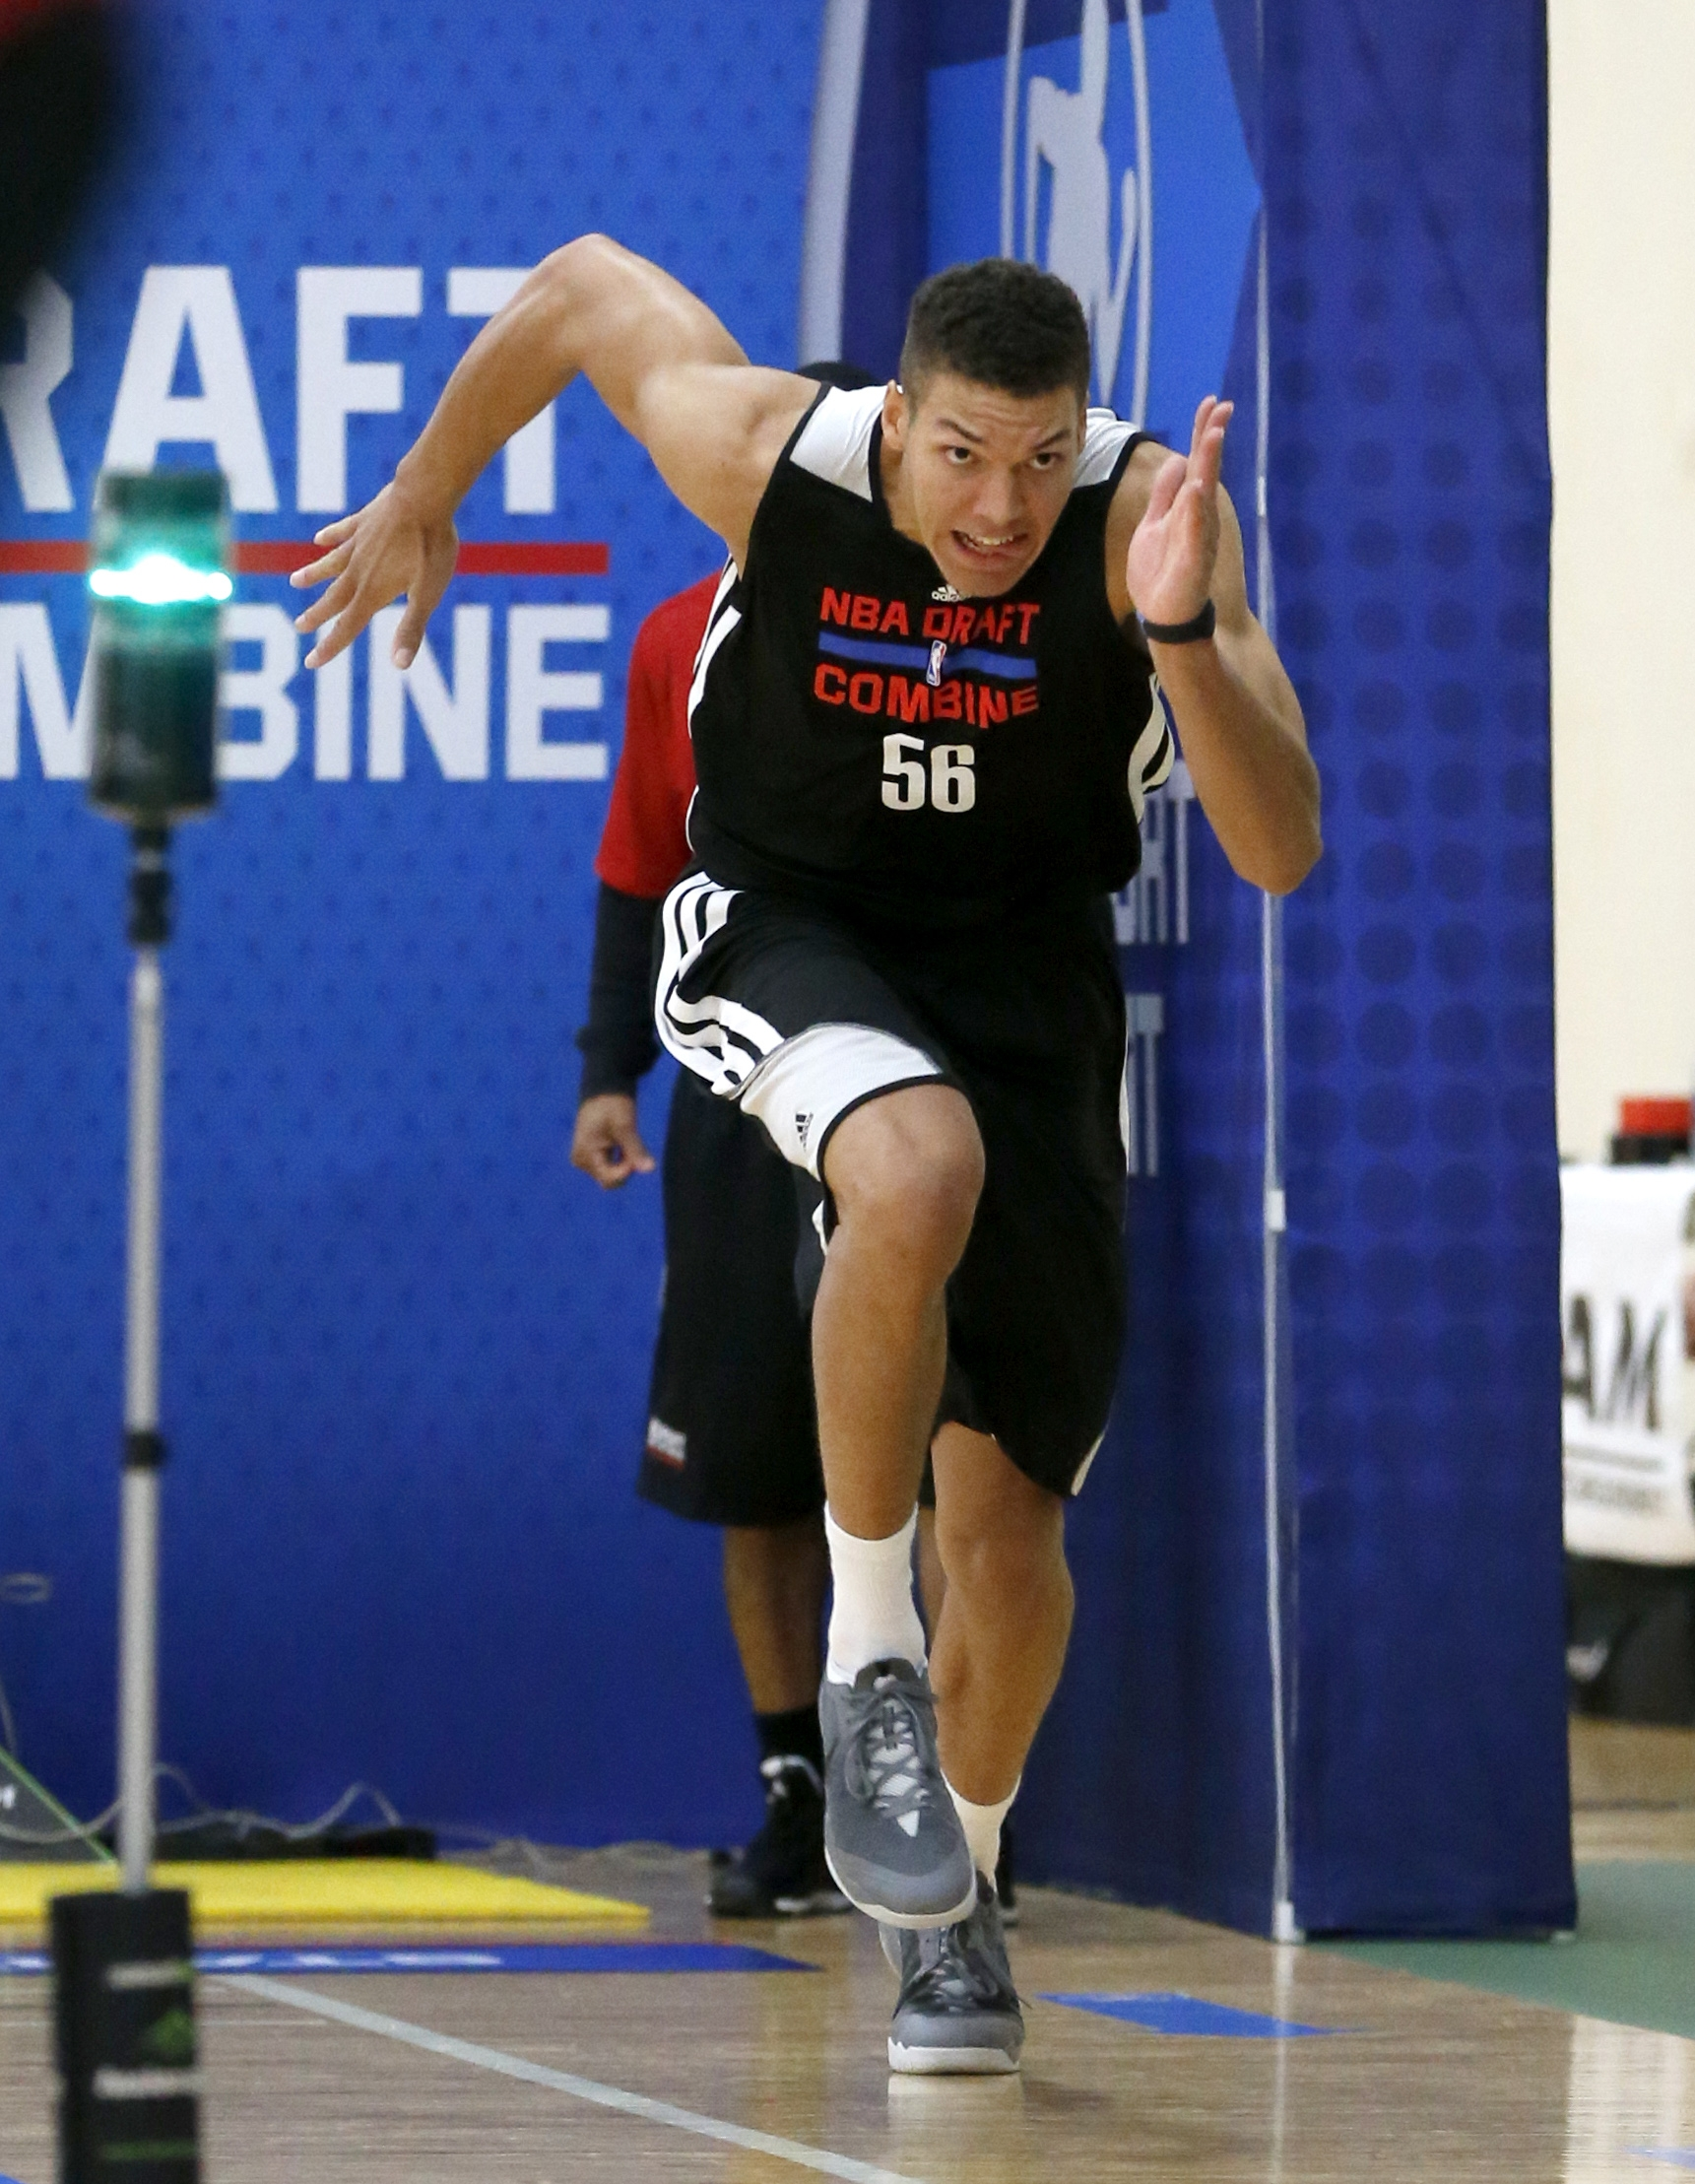 The Arizona Wildcats' freshman had the best time in the shuttle run (2.76 seconds), which measures a player's agility and ability to change direction.